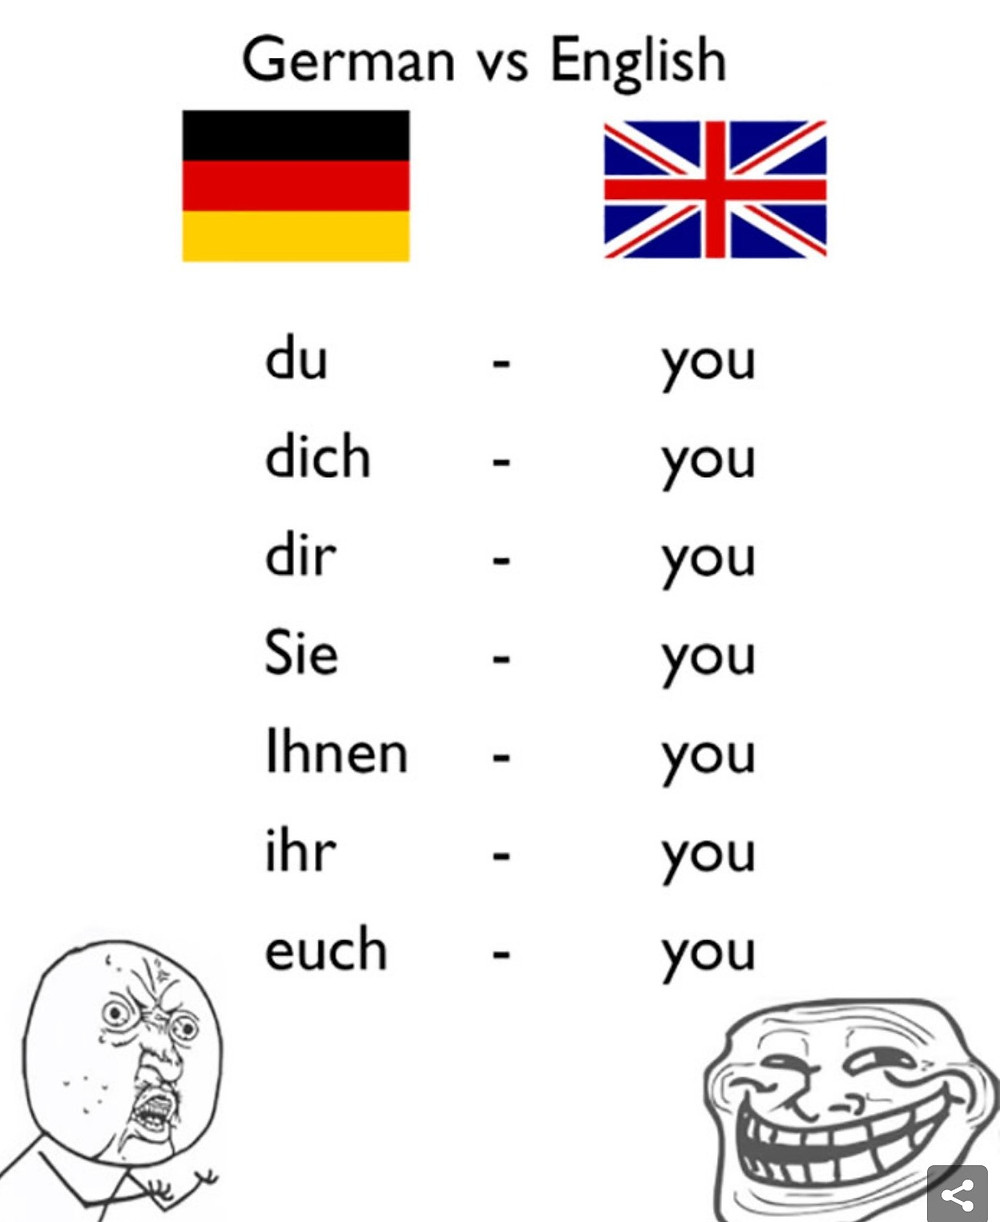 Pronouns in German and English